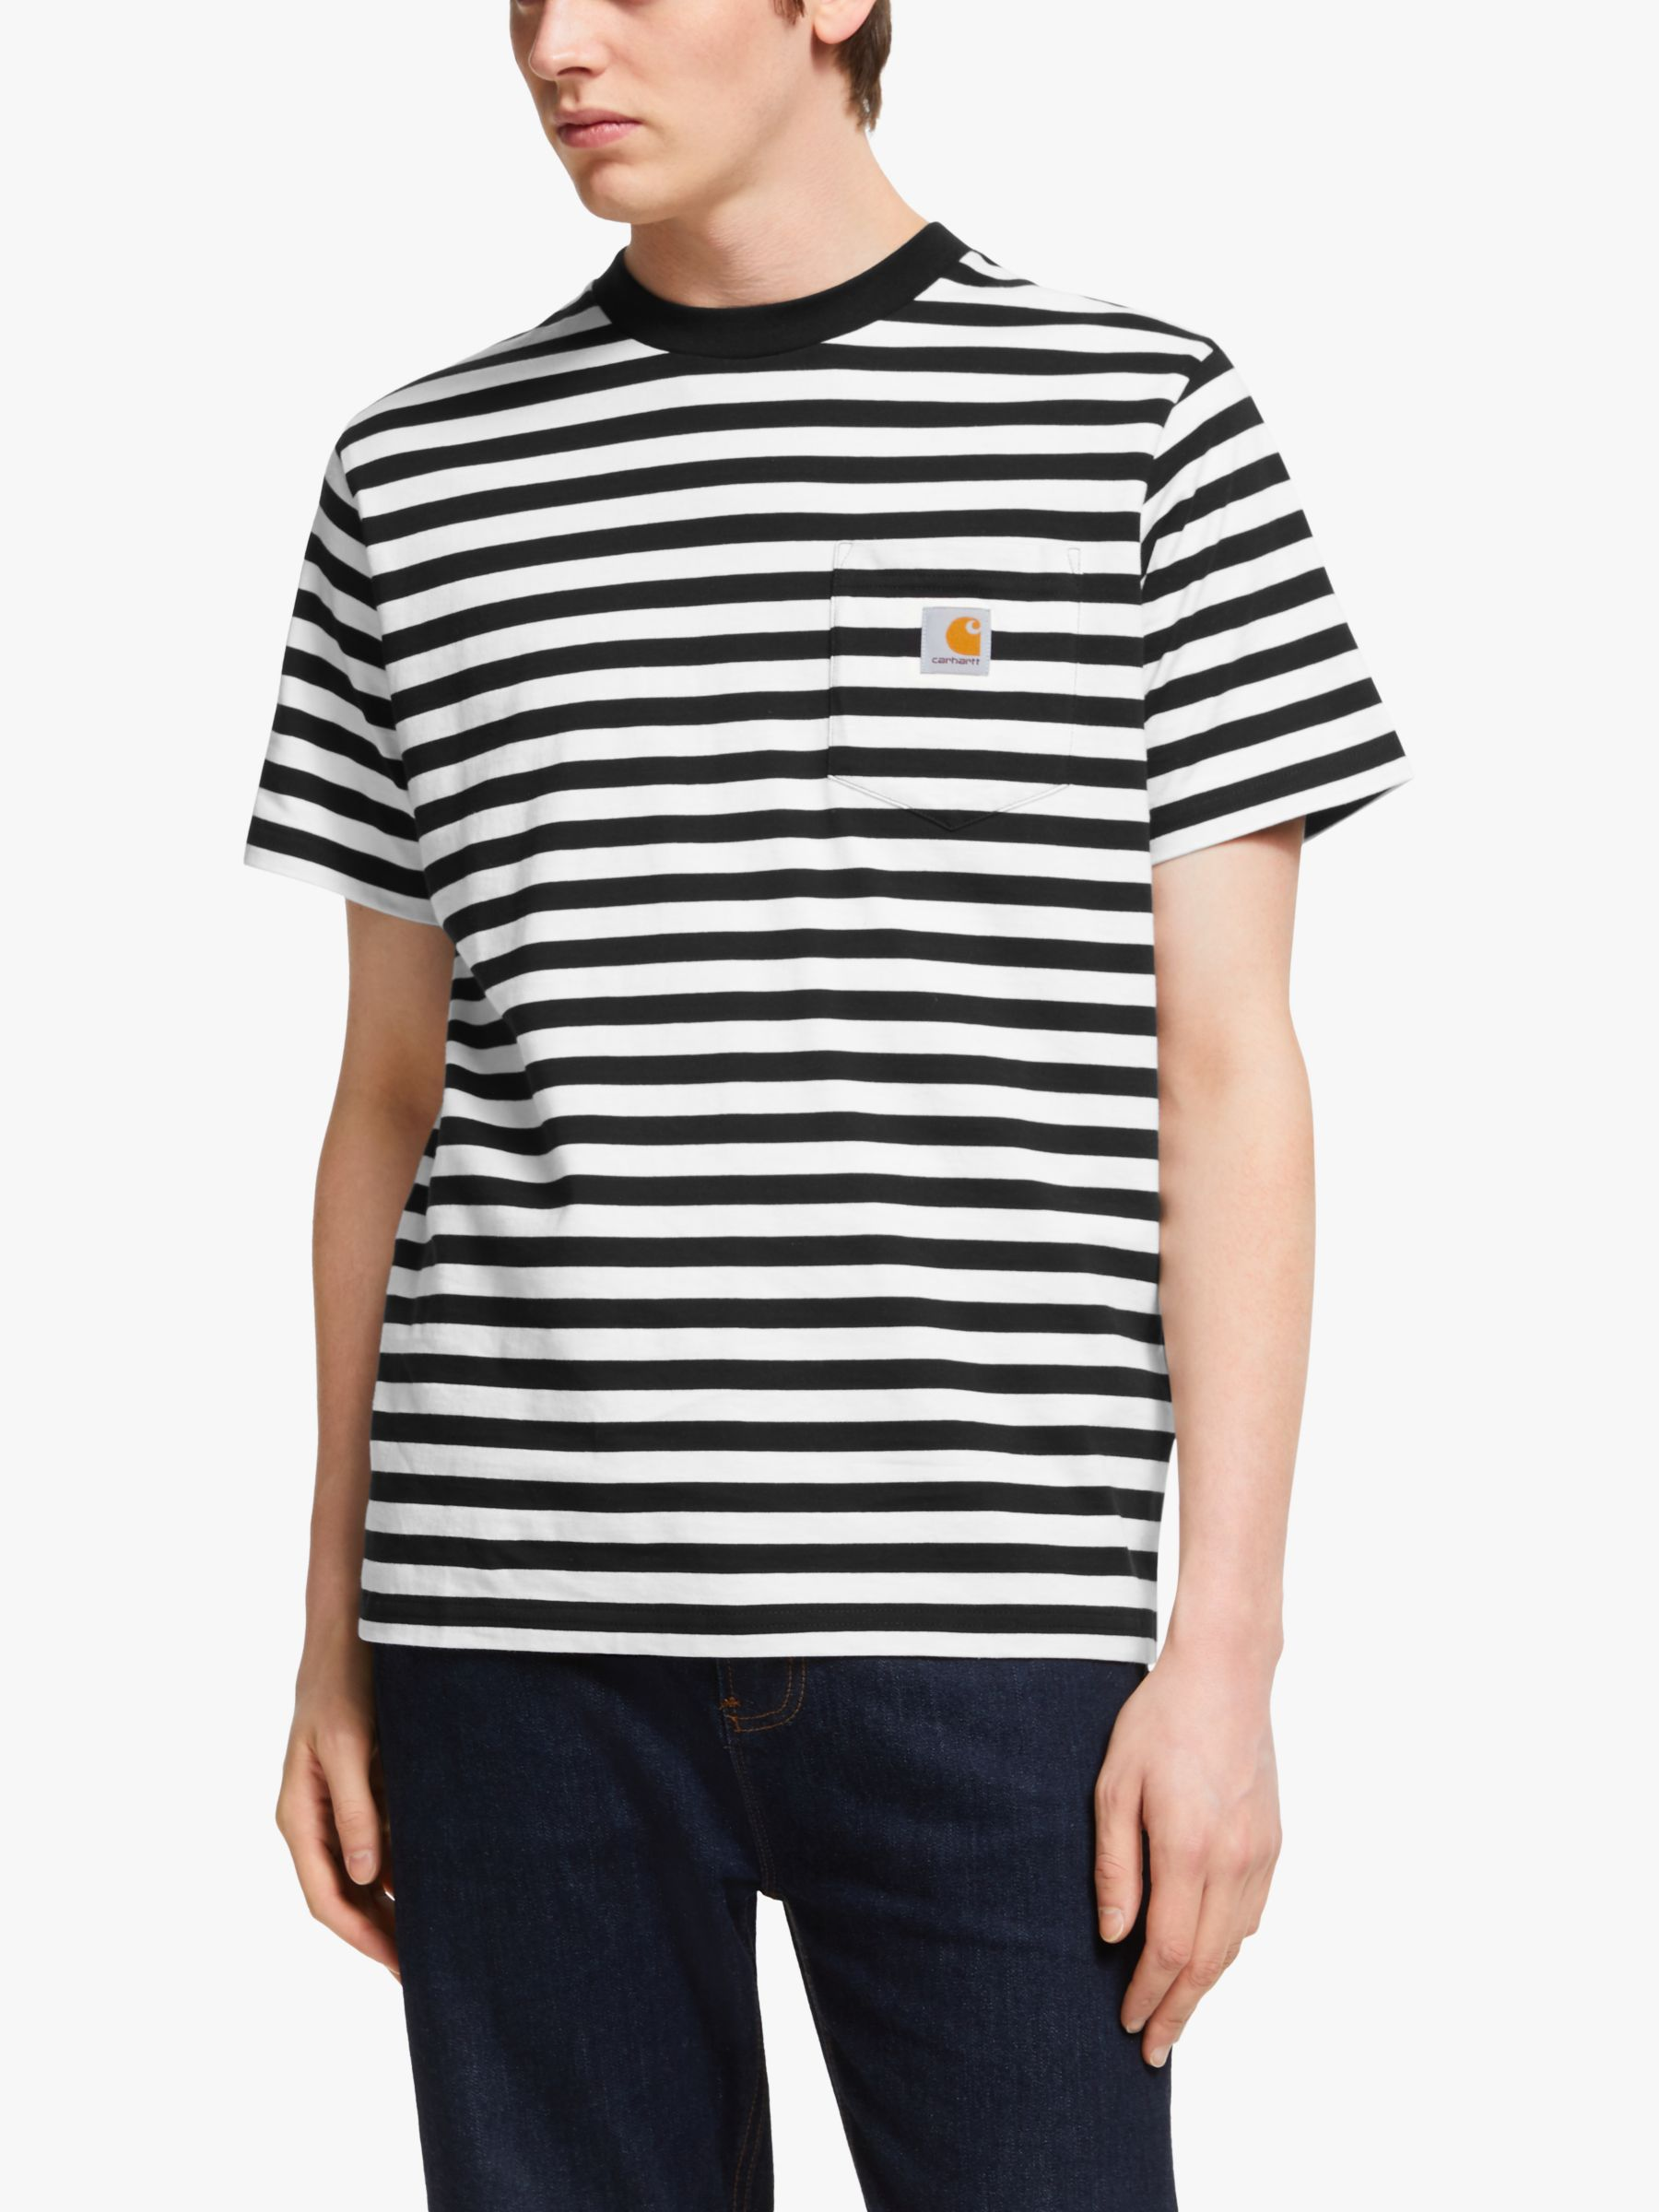 Carhartt WIP Carhartt WIP Scotty Pocket Stripe Tee